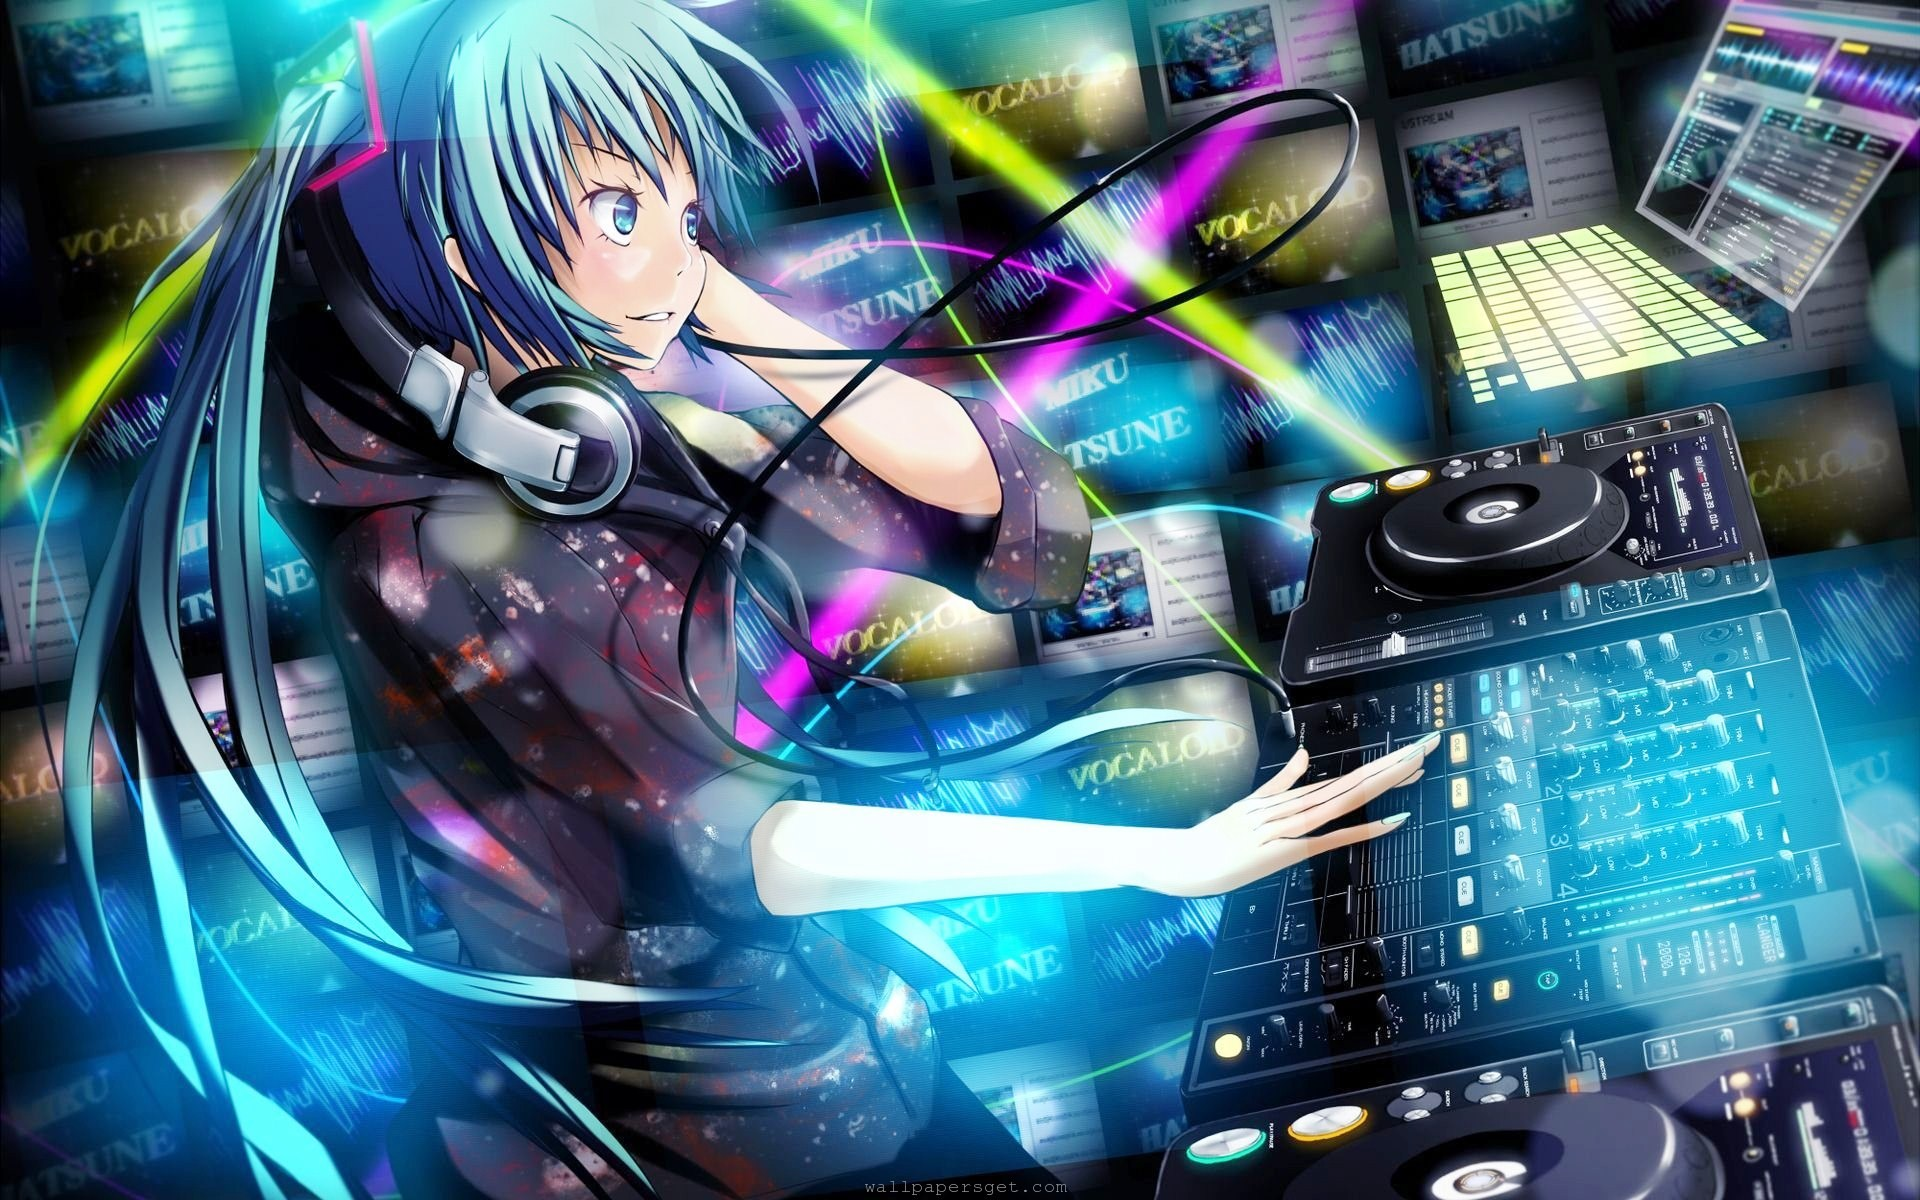 Anime / Manga Wallpapers Full HD Download - PixelMusicPixelMusic